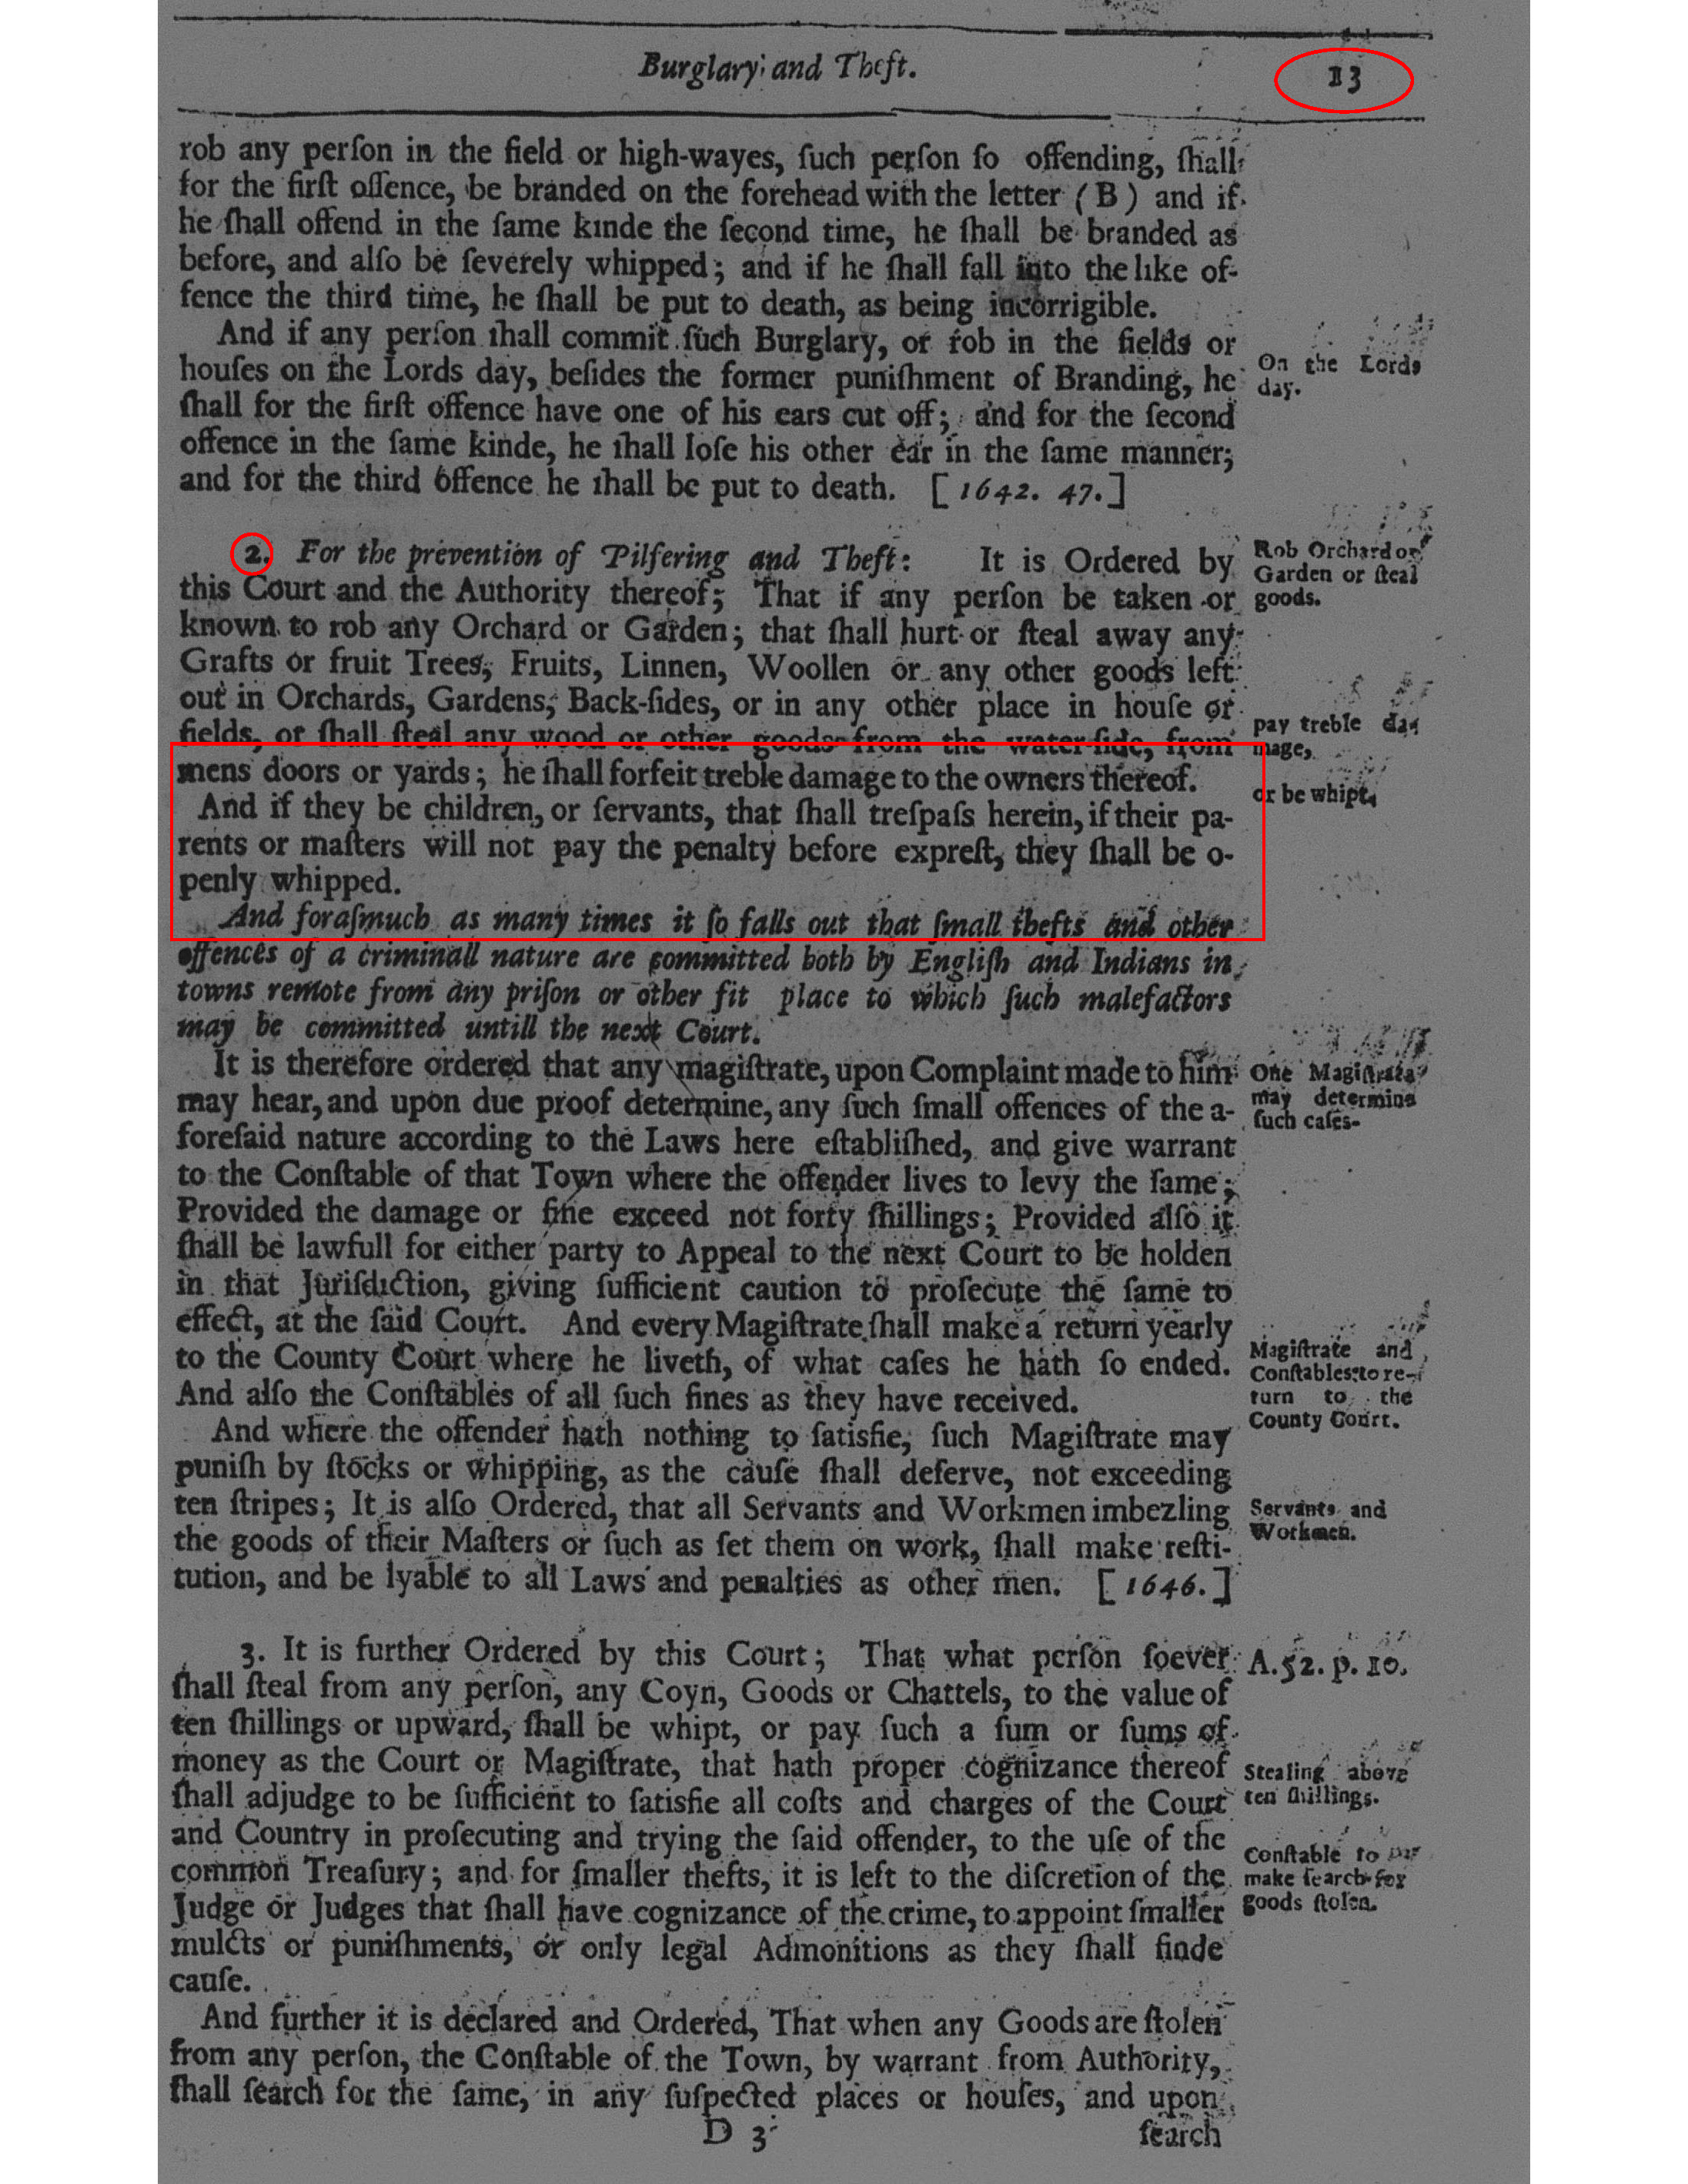 Page of the 1672 General Lawes and Libertyes referenced by Hannah (with specific parts highlighted).